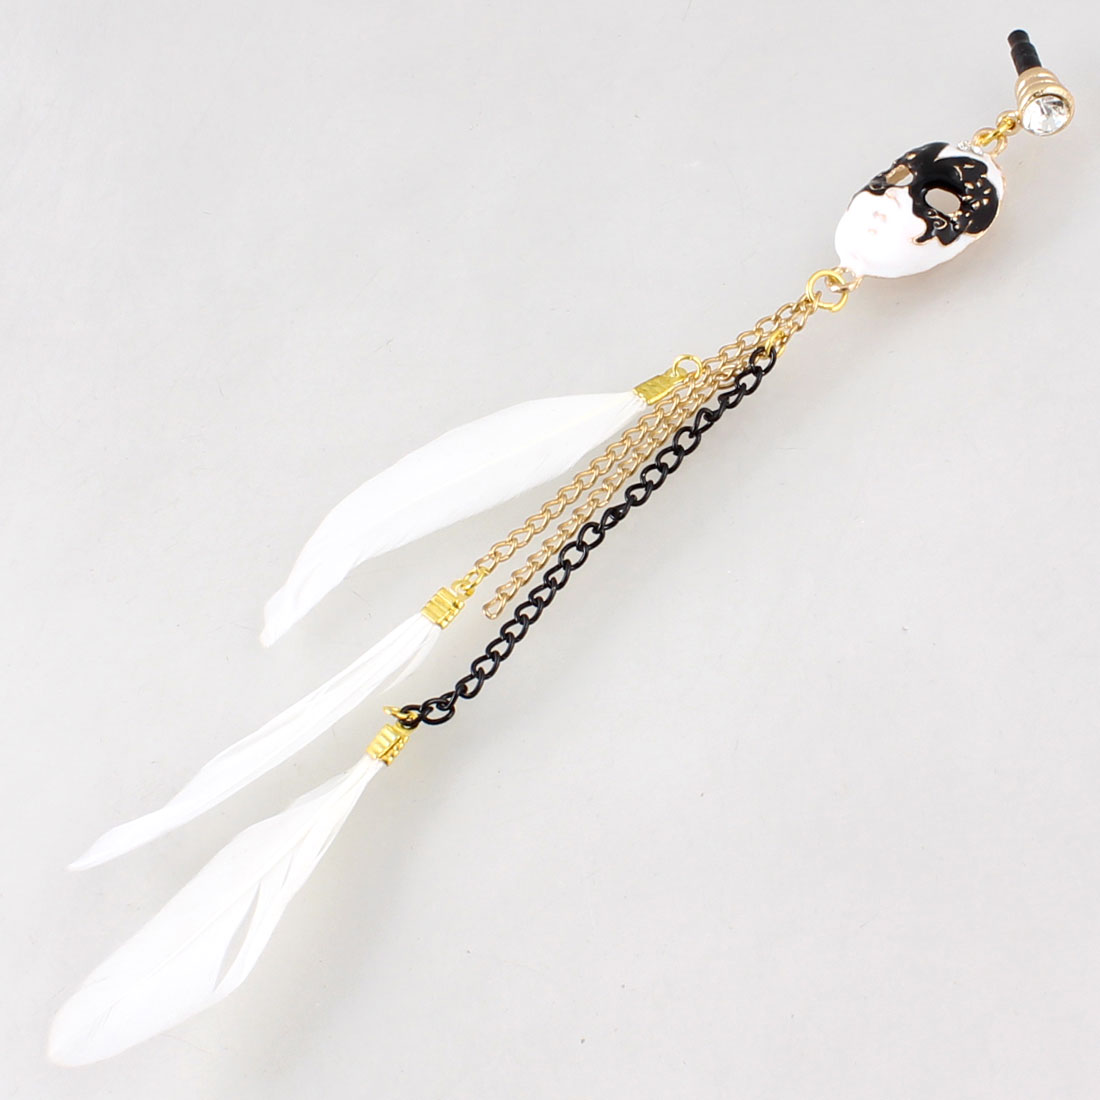 Mask White Faux Feather Pendant 3.5mm Ear Dust Cap Phone Strap for Cellphone